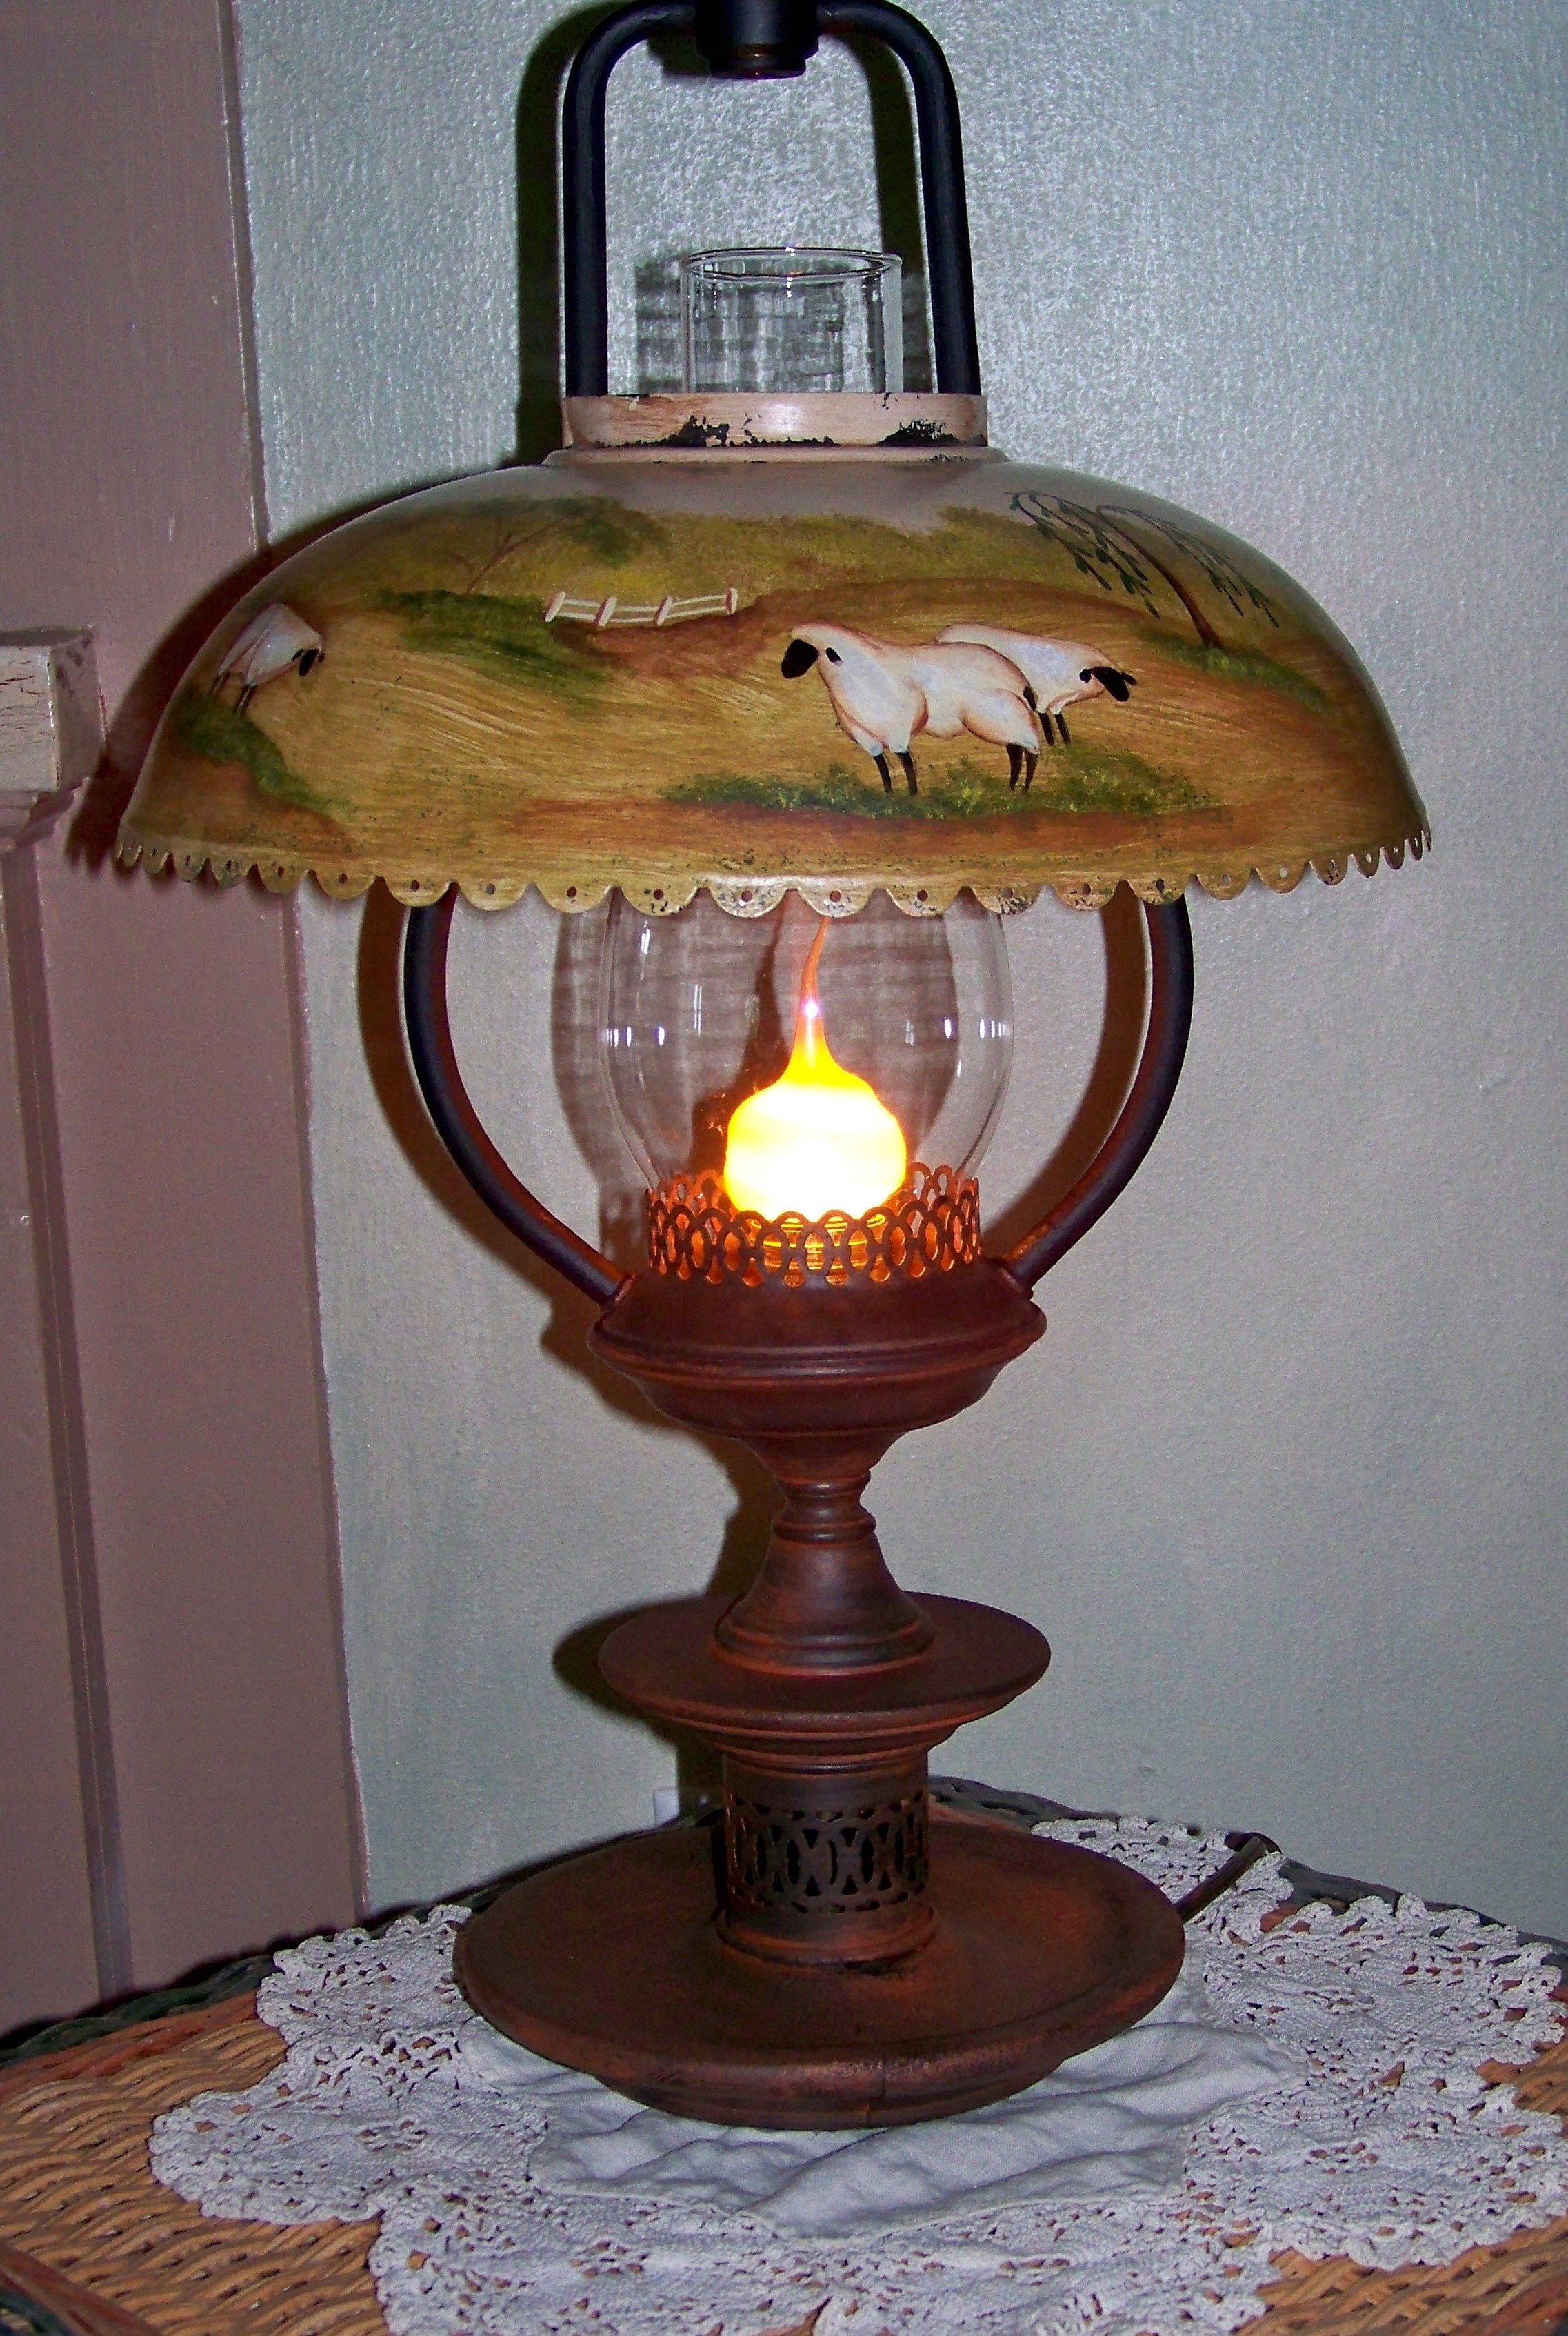 I Enjoy Finding Old Lamps That Need Tlc This Lamp Needed Painting Wiring Light Fixtures And Re Painted The Entire Than A Scene On Shade Added